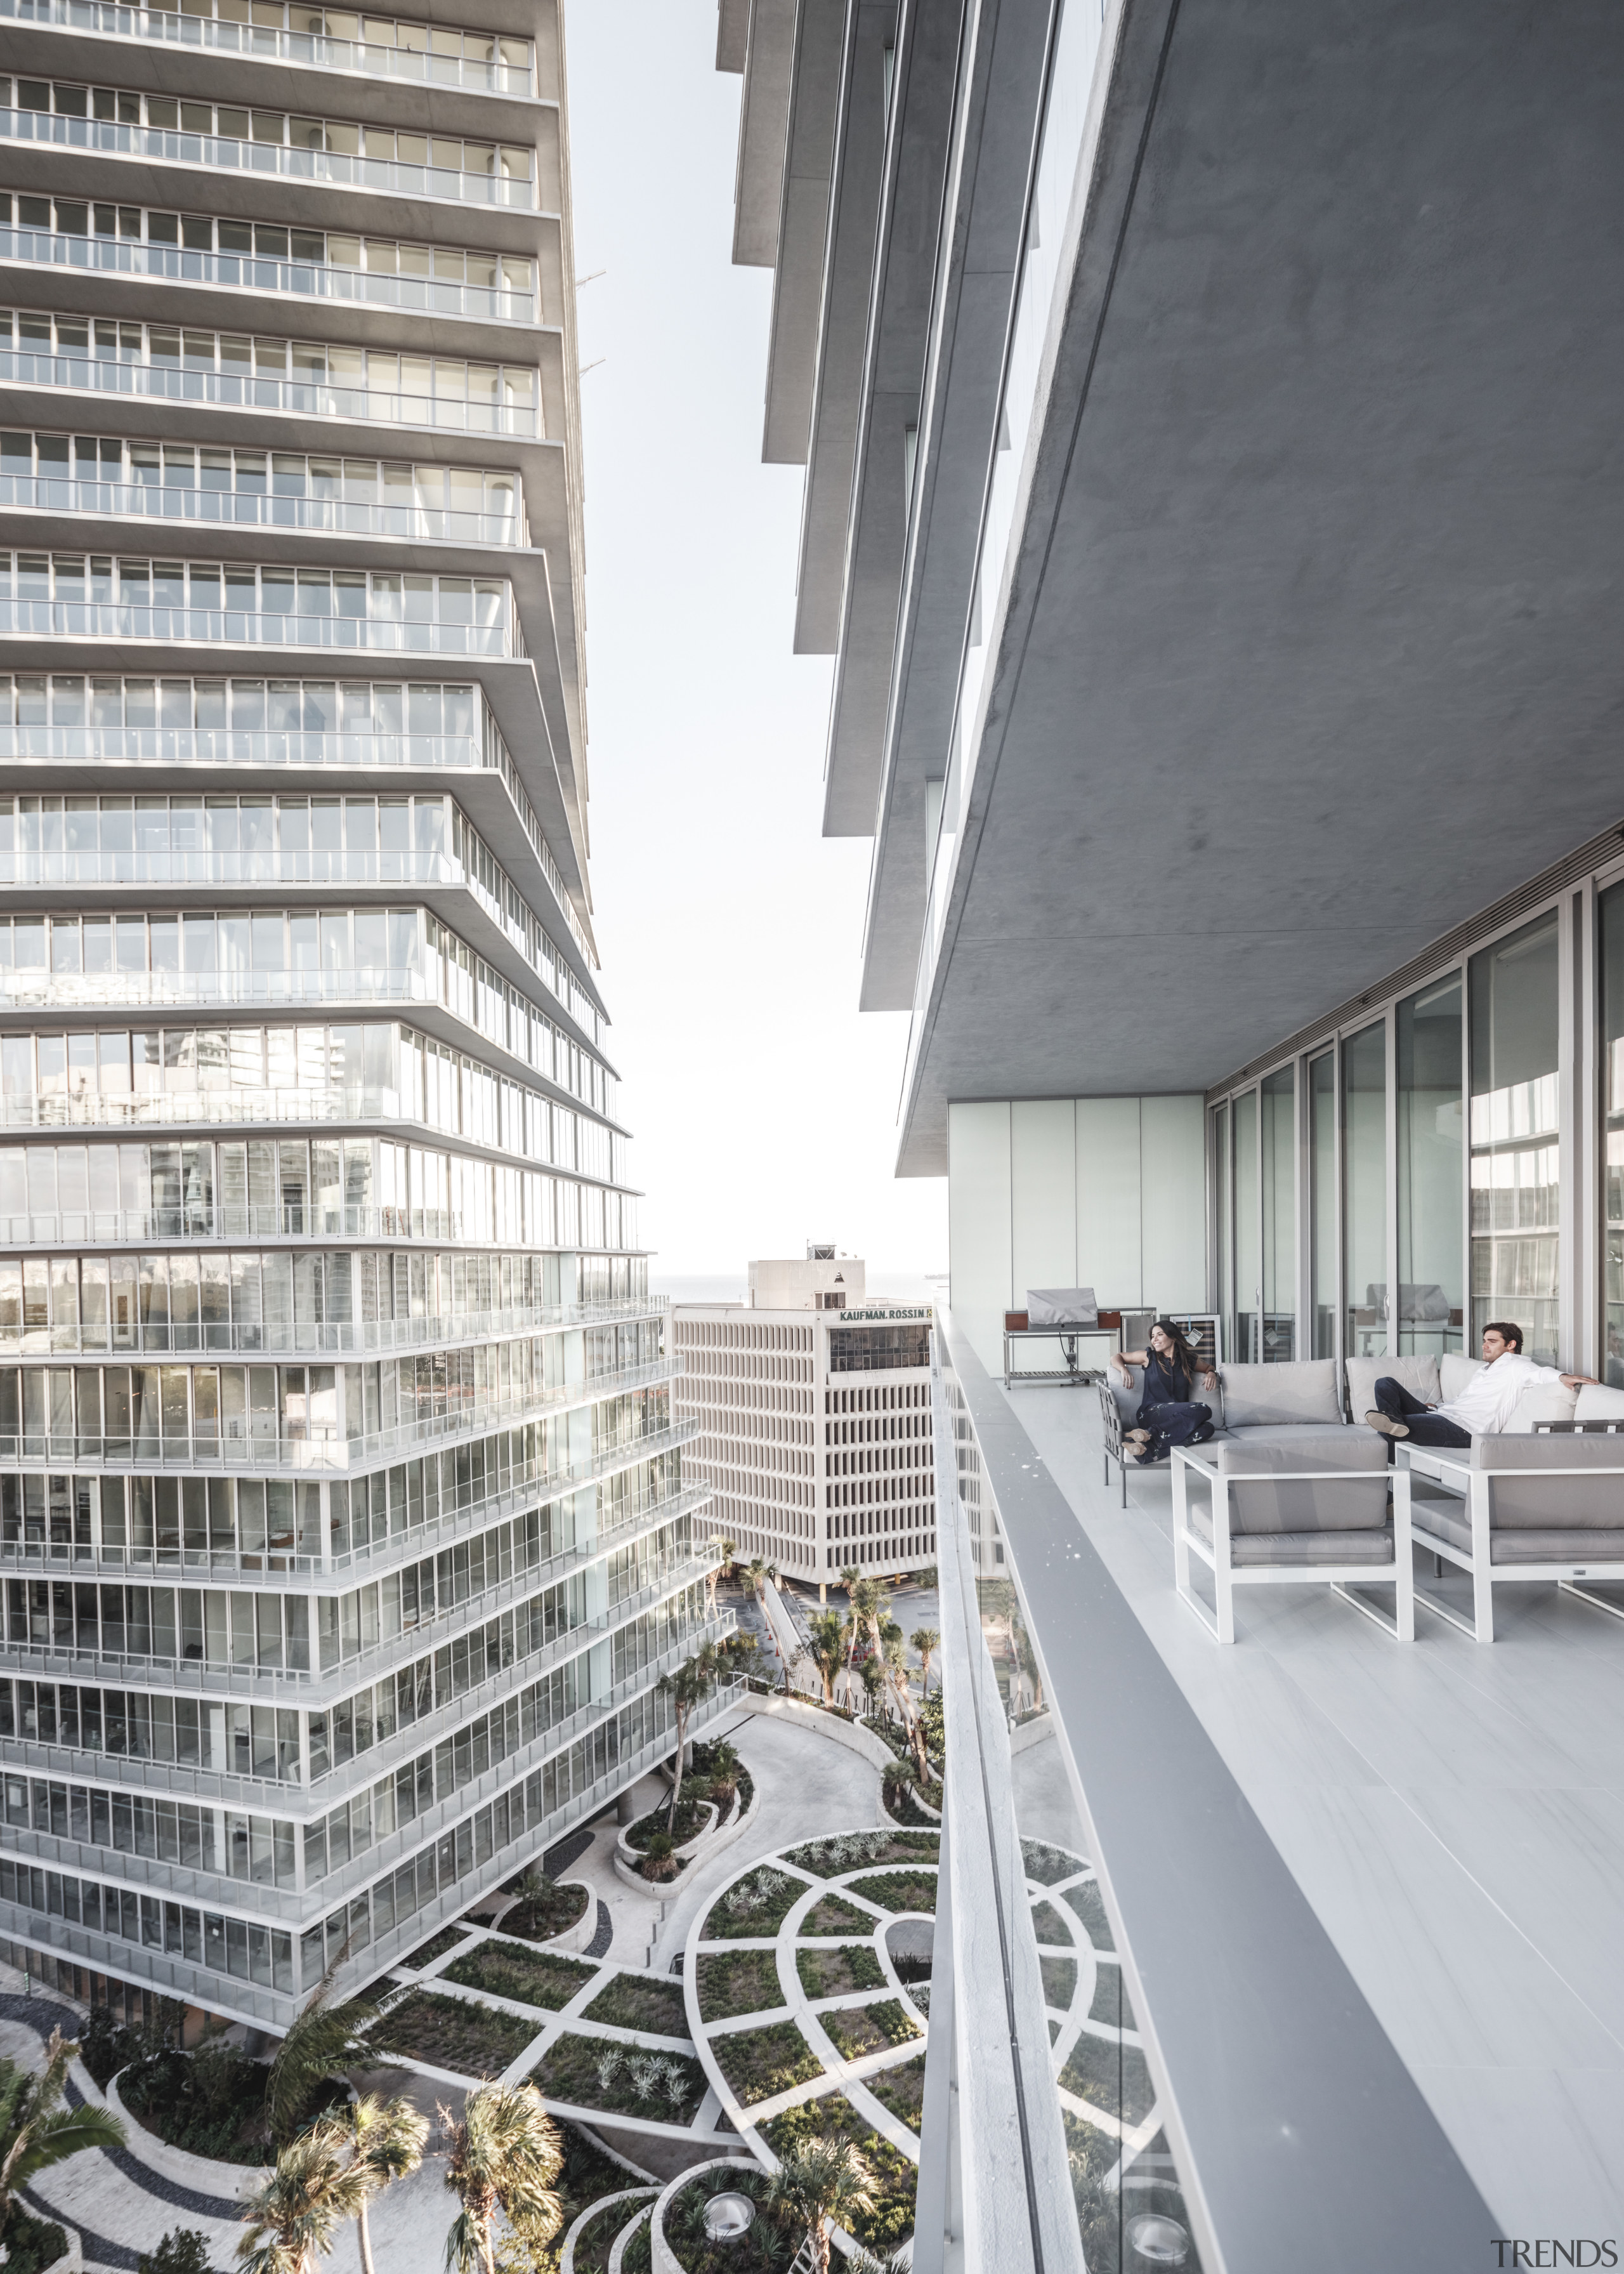 The twisting nature of the towers at Grove apartment, architecture, building, condominium, corporate headquarters, daylighting, facade, headquarters, mixed use, skyscraper, white, gray